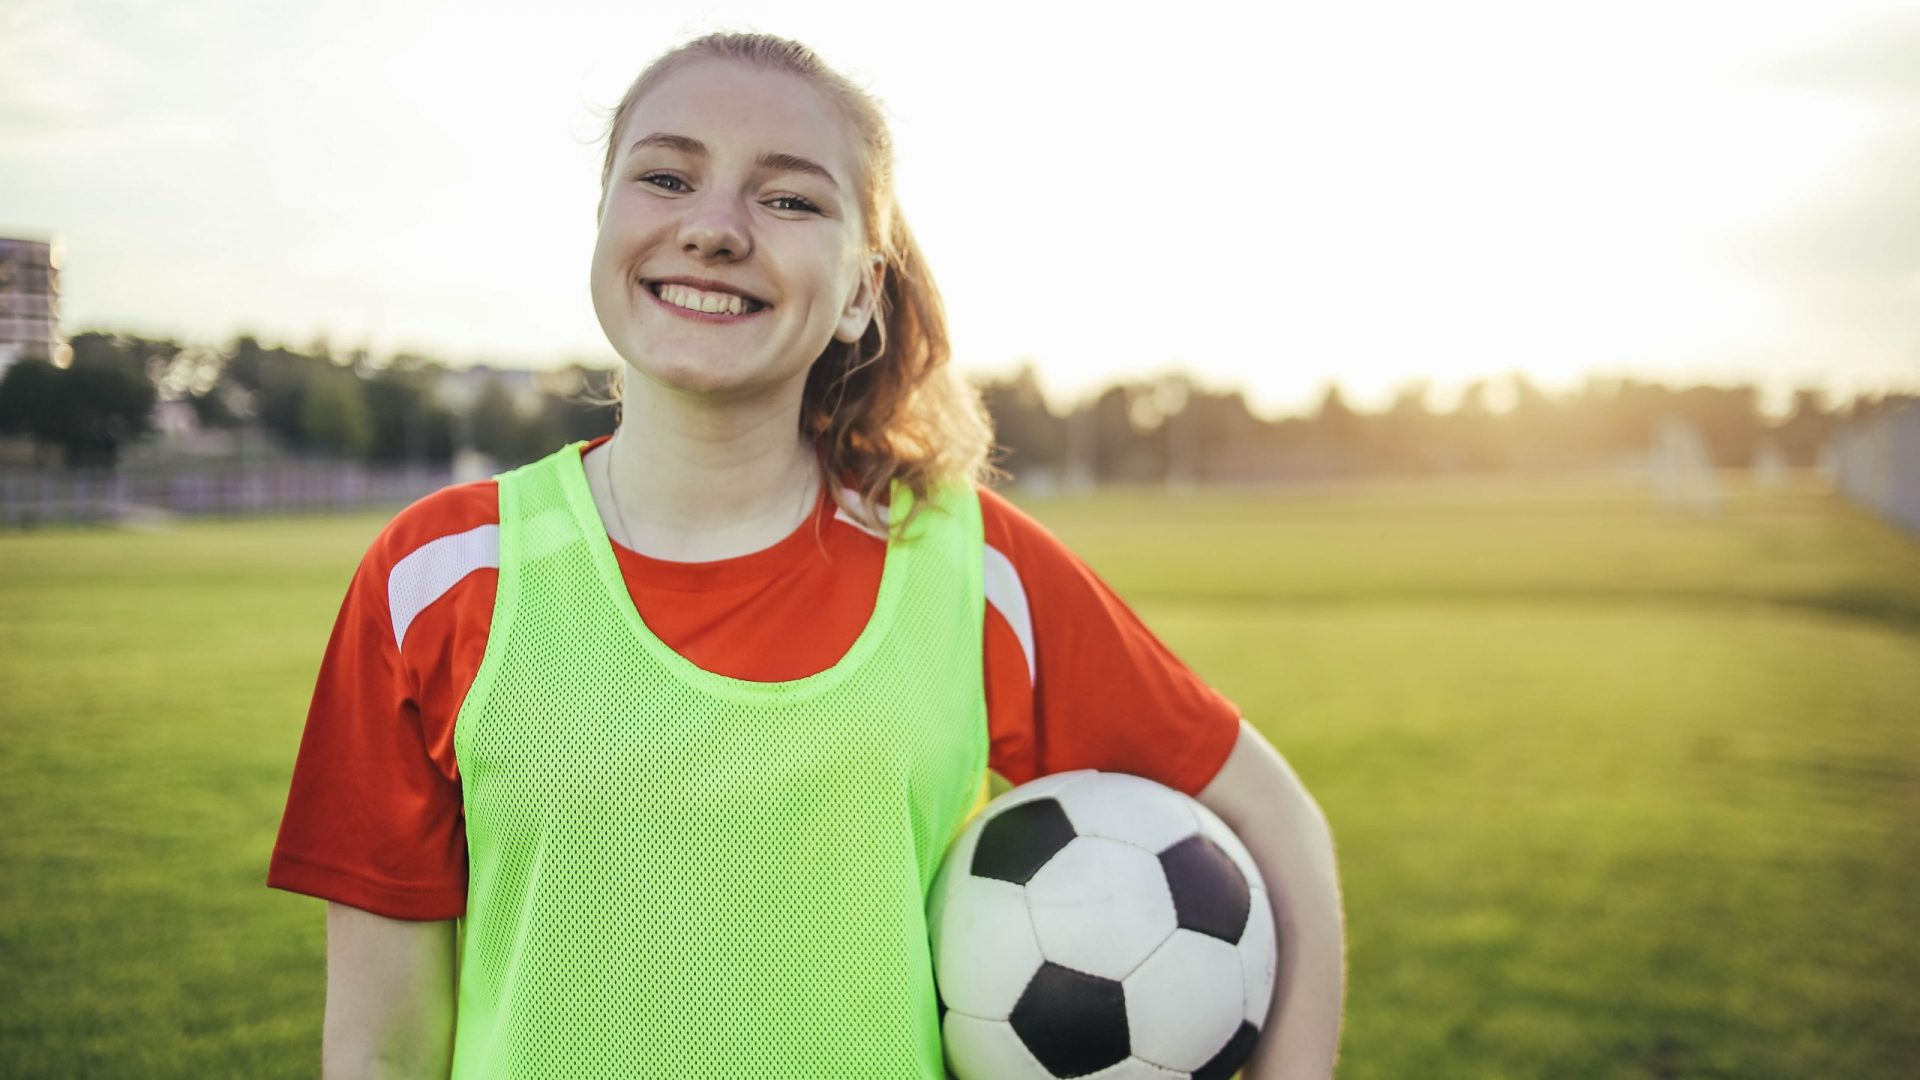 Portrait,Of,A,Smiling,Teen,Girl,Football,Player,With,A